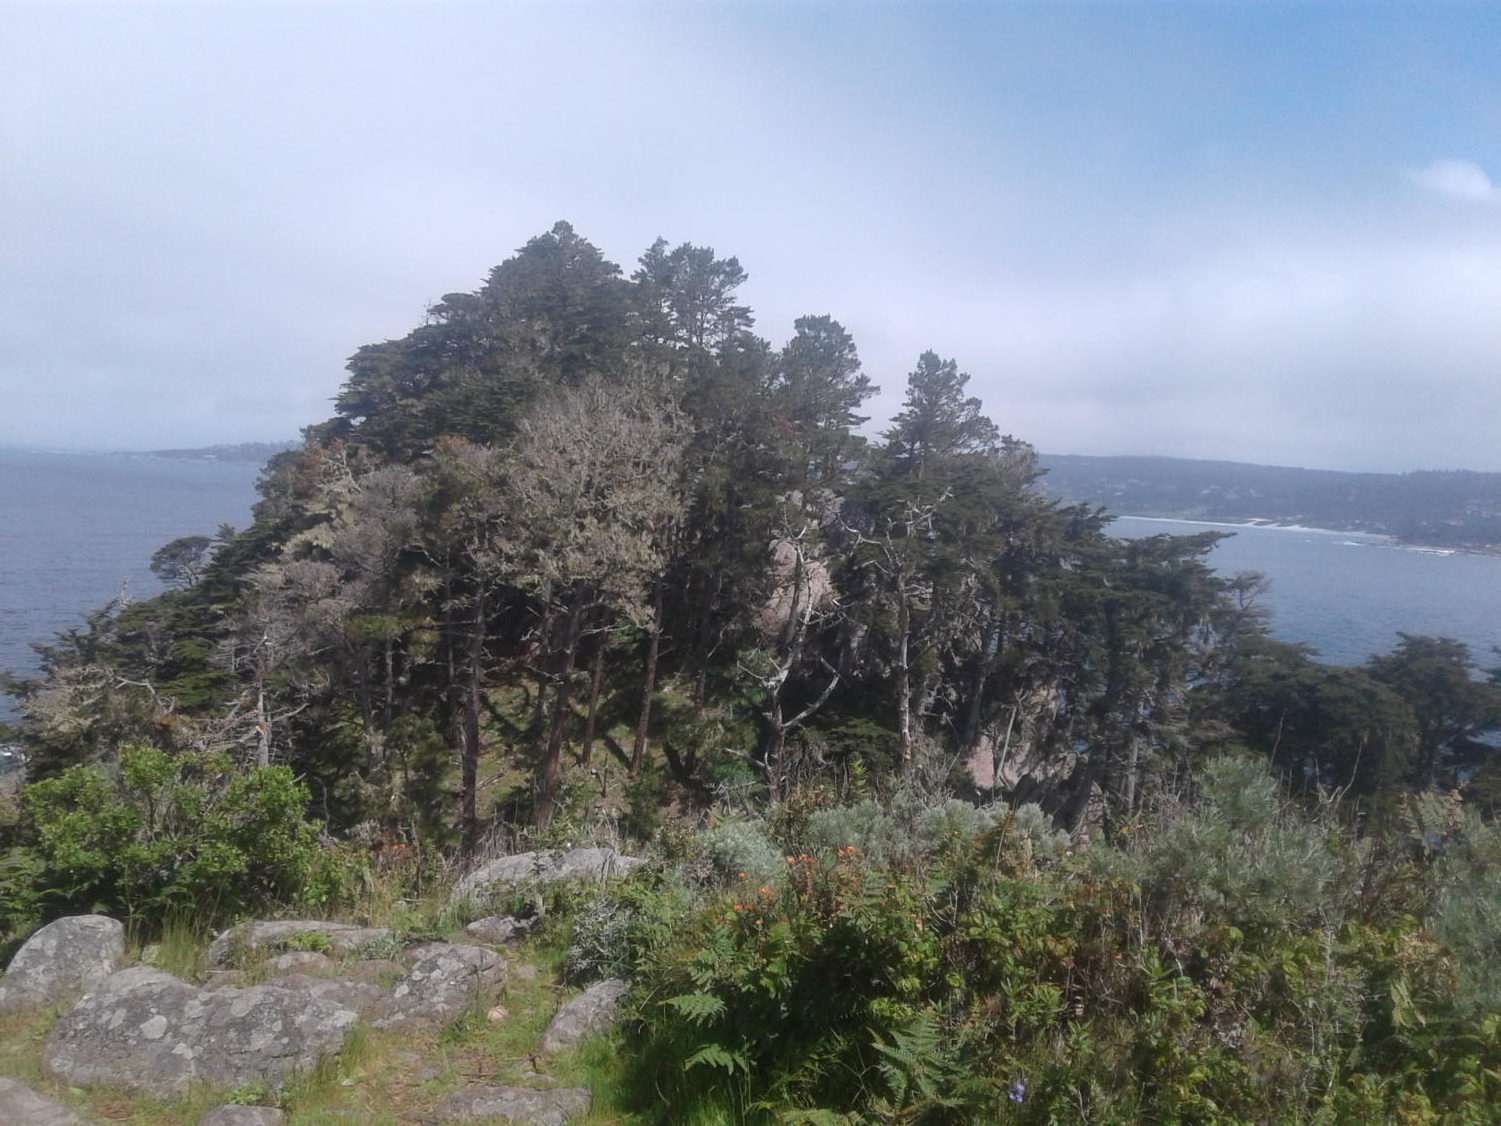 View at Point Lobos State Natural Reserve